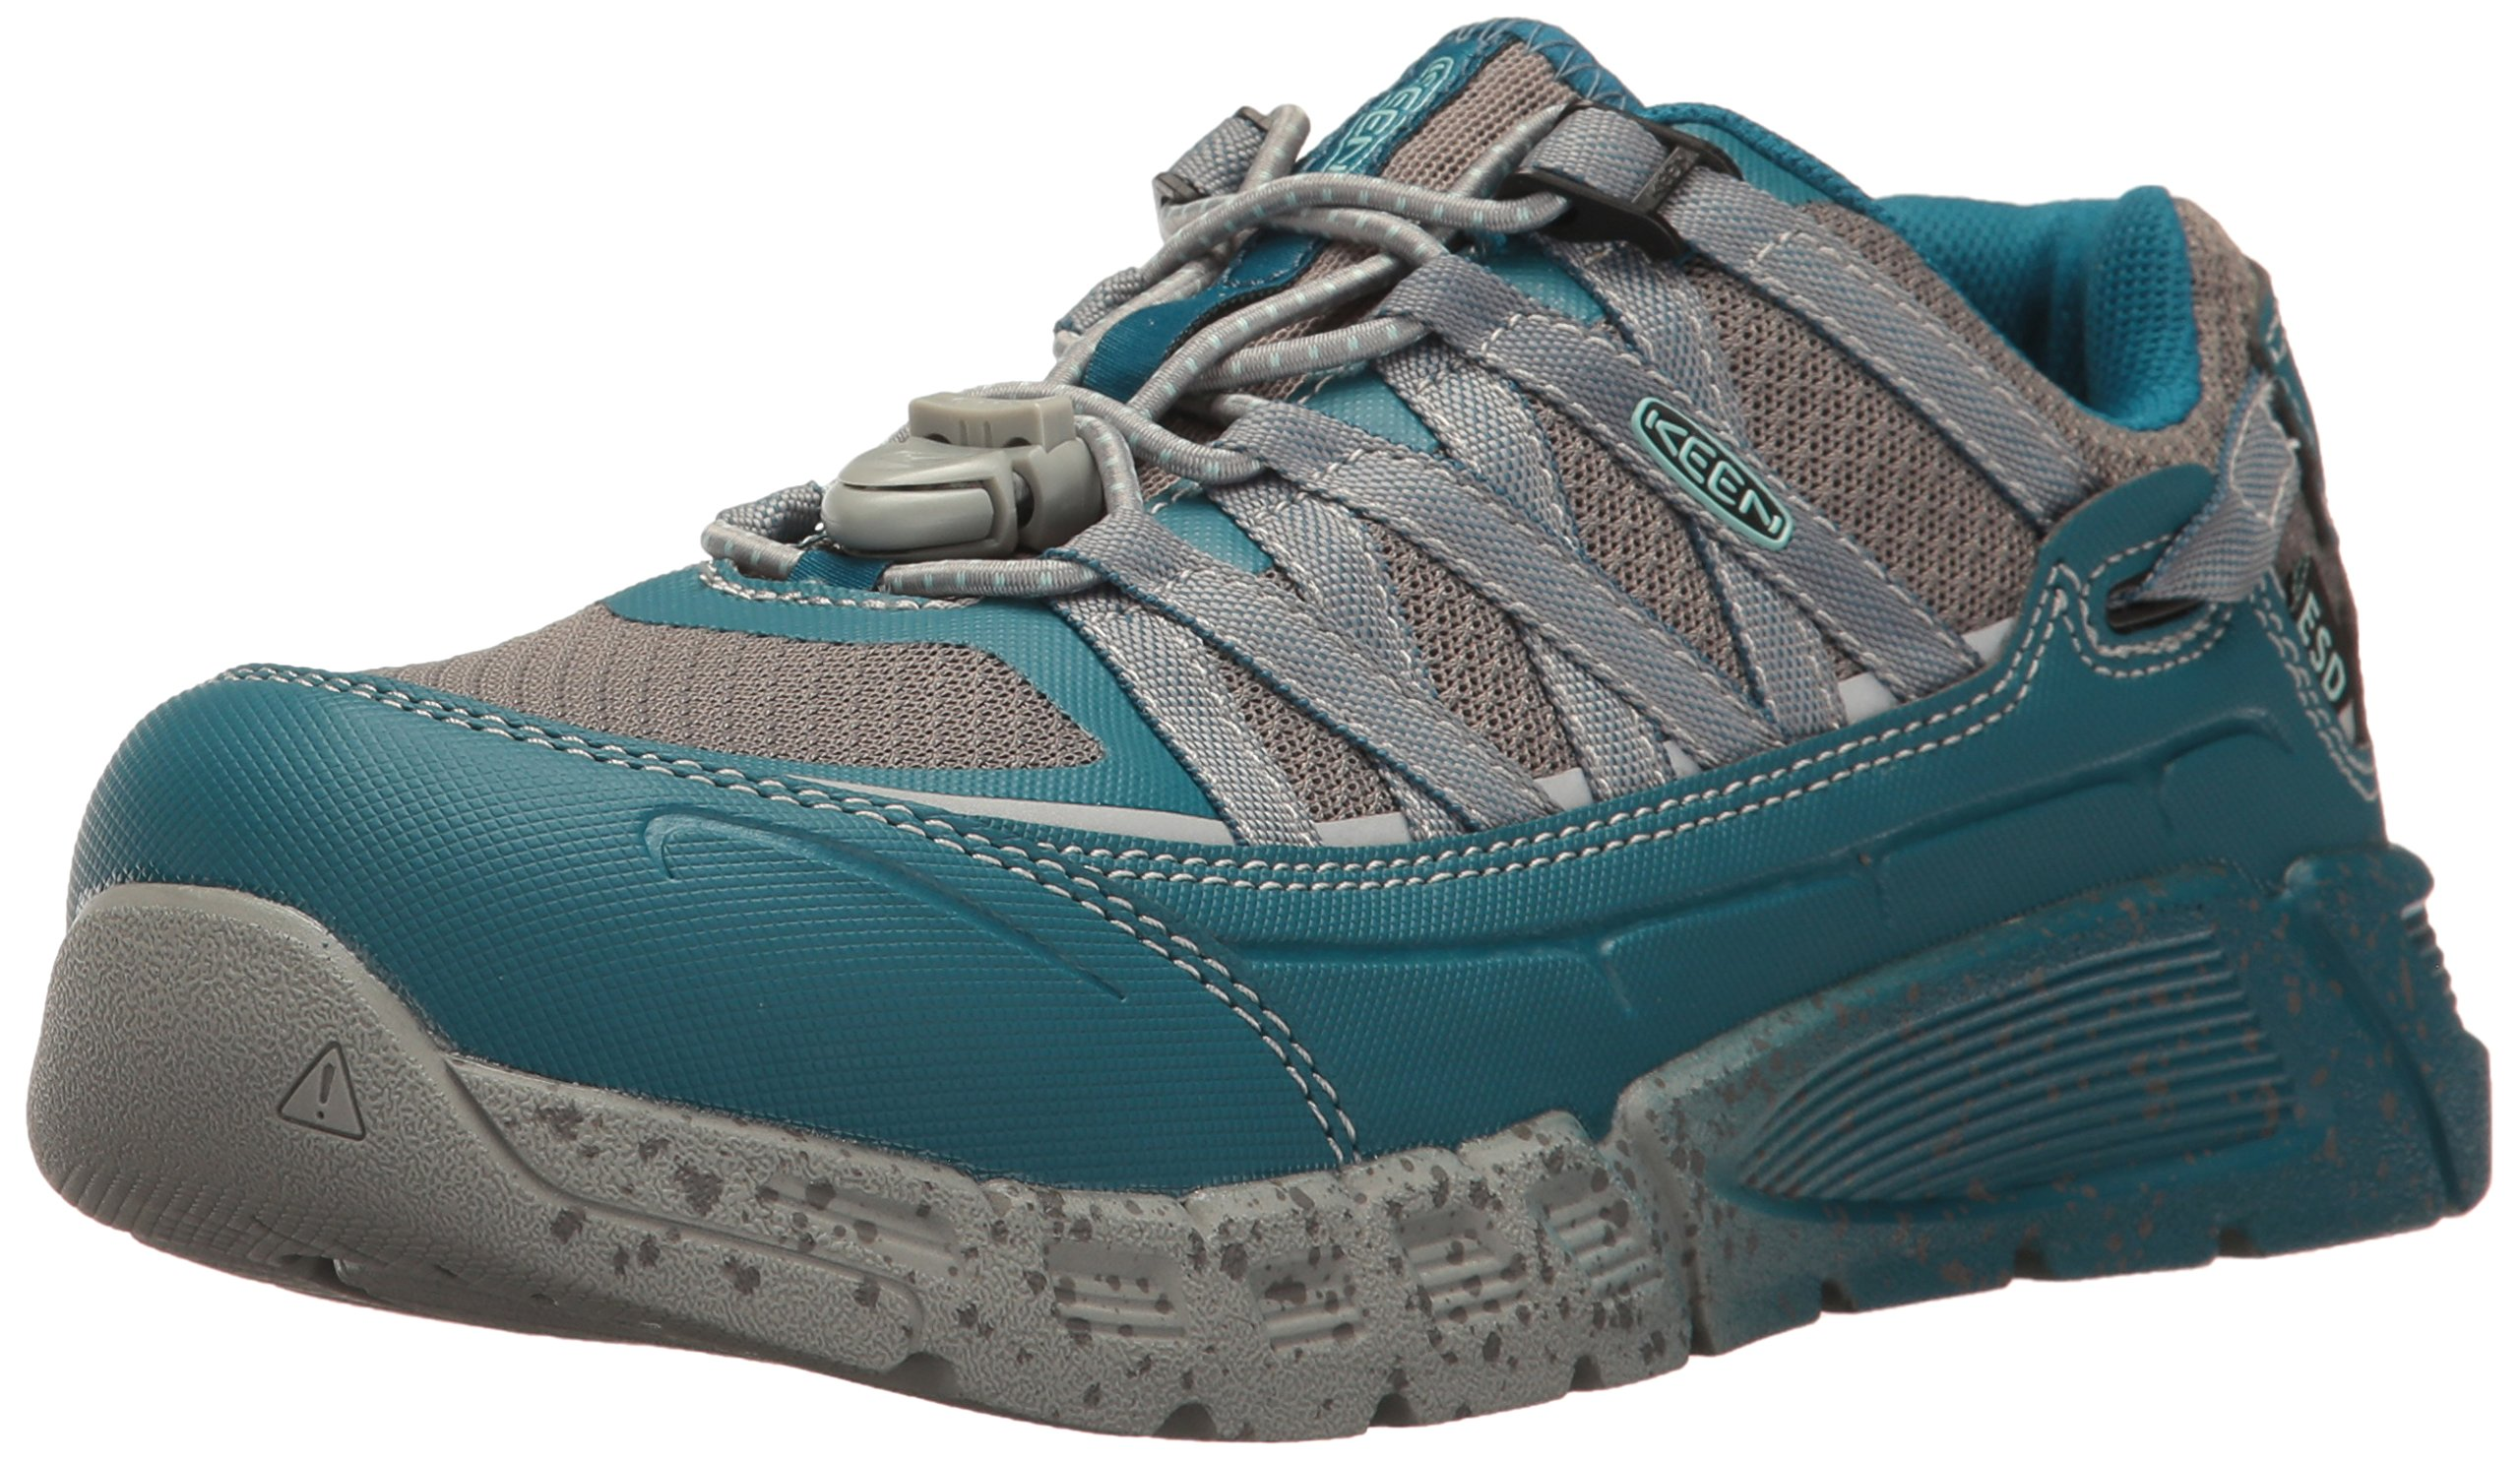 KEEN Utility Women's Asheville at ESD Industrial & Construction Shoe, Ink Eggshell Blue